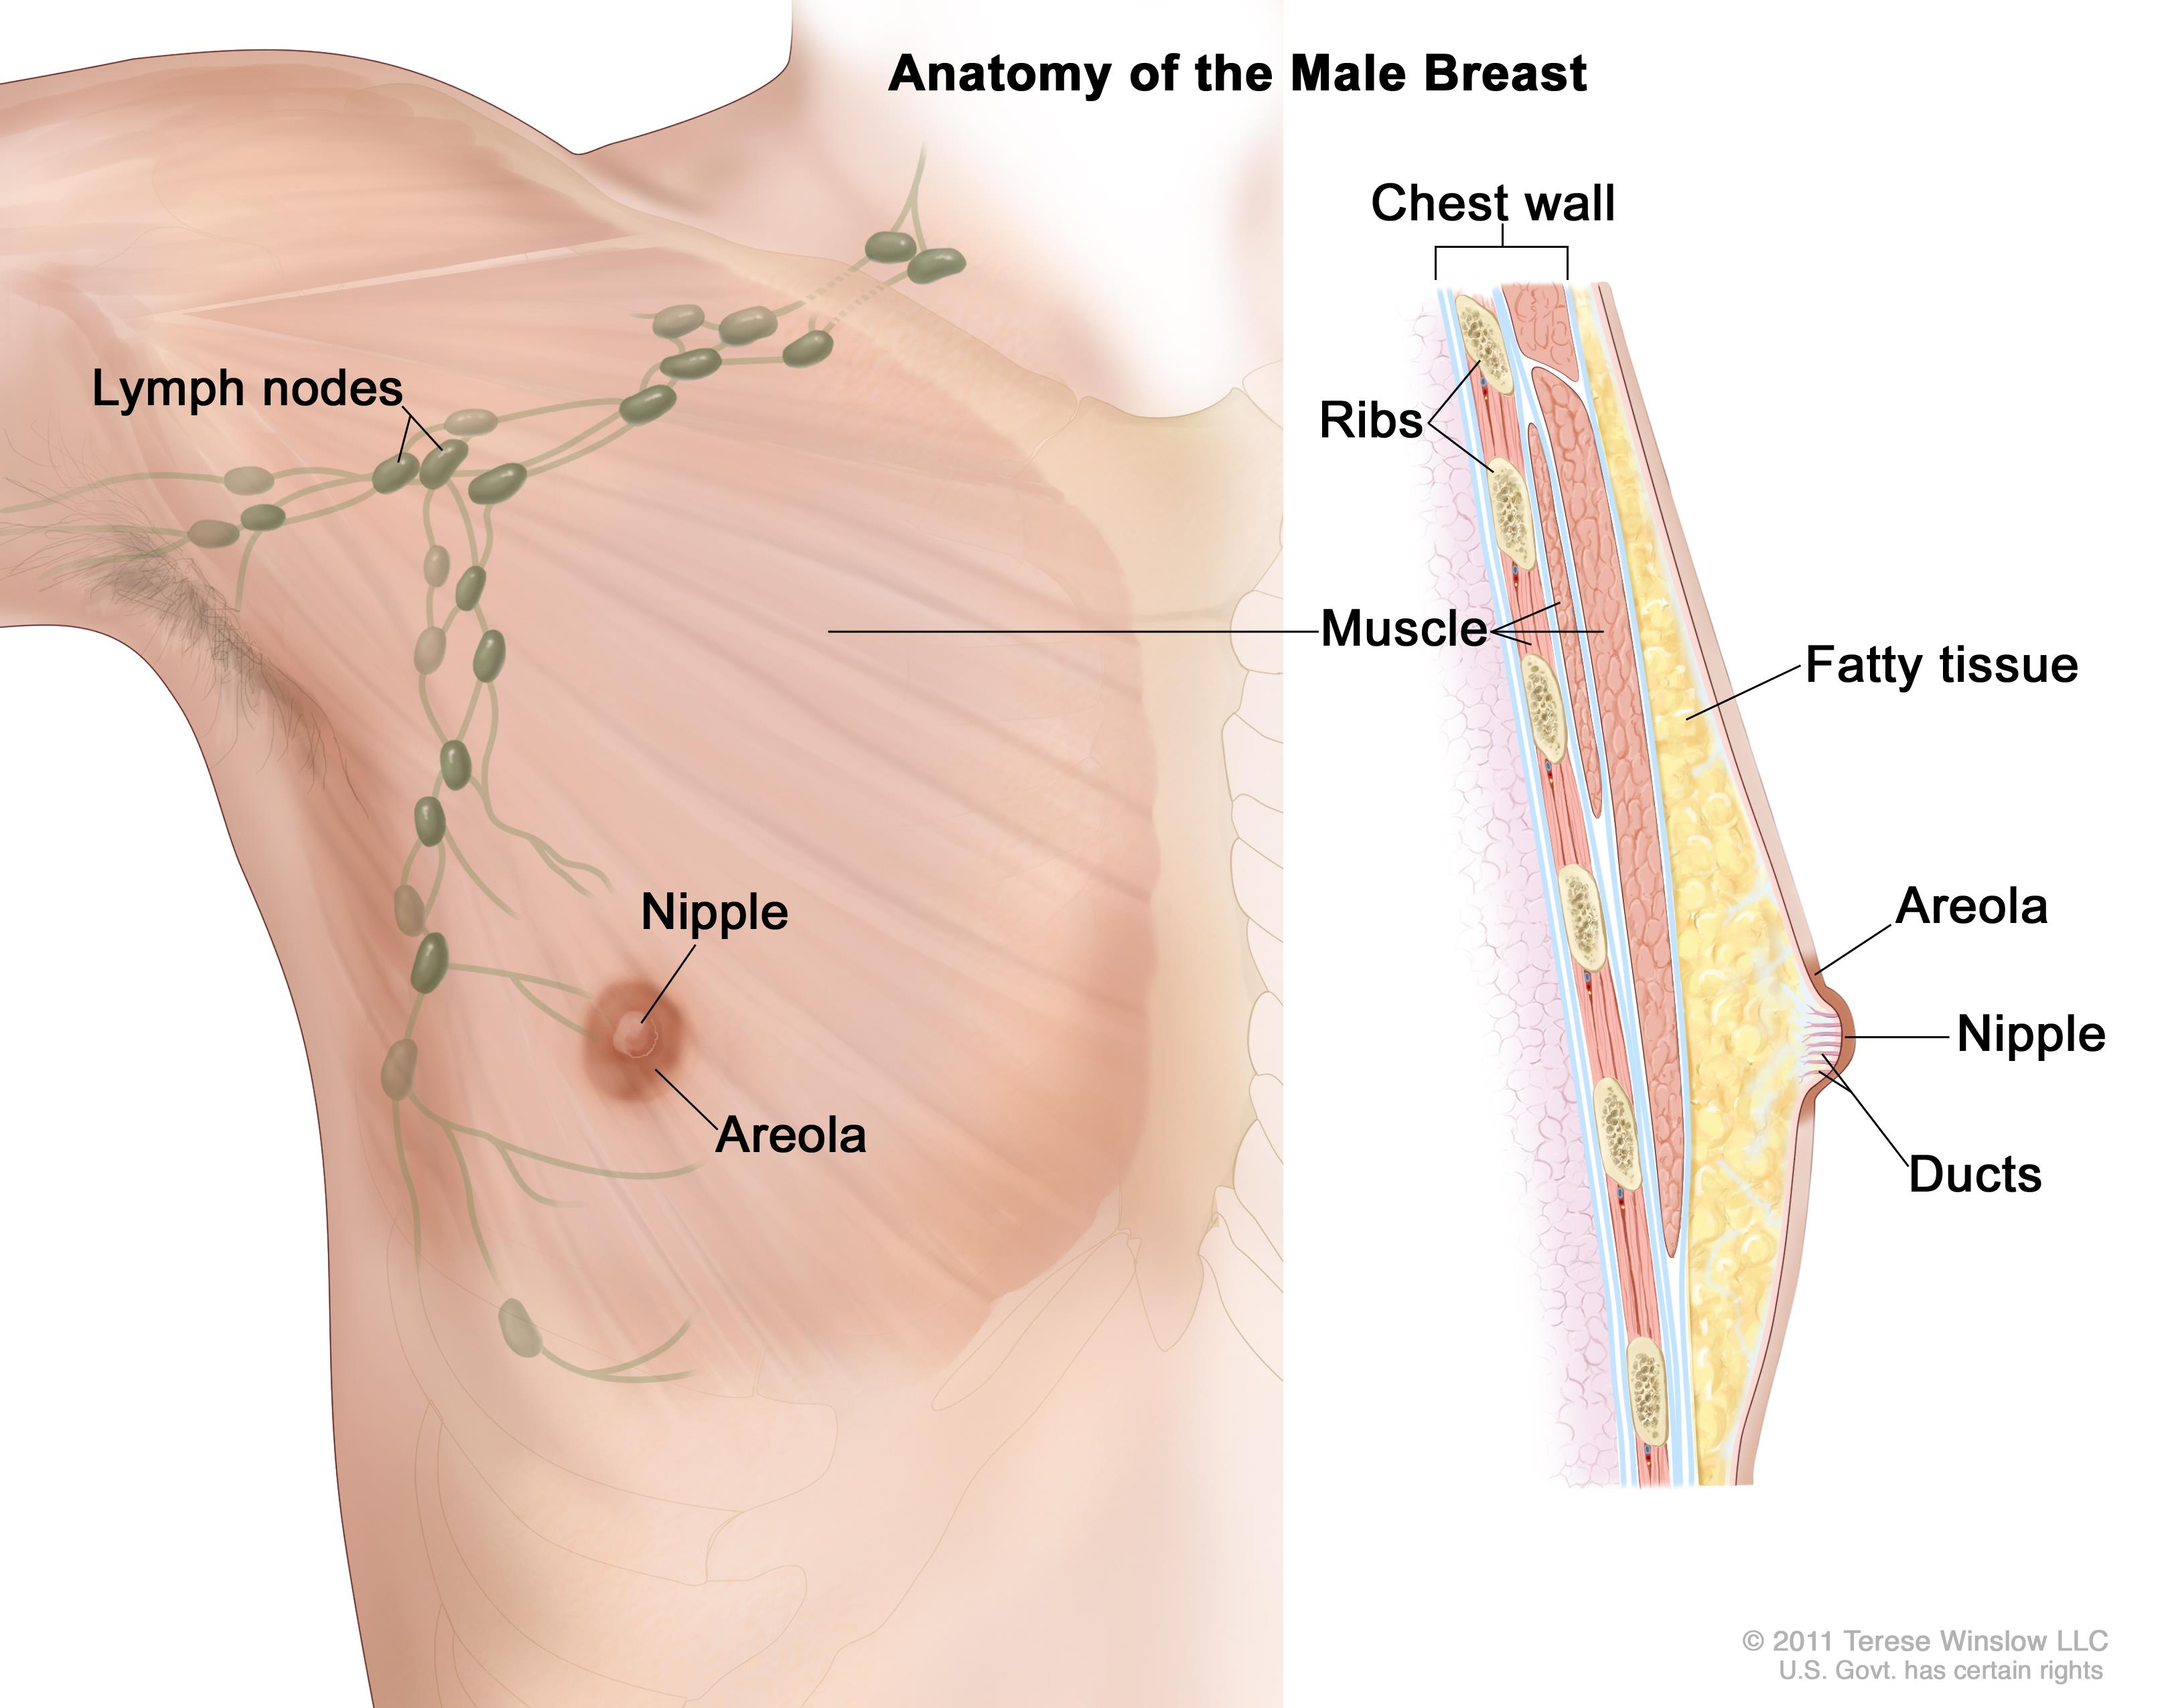 Duct work in breast